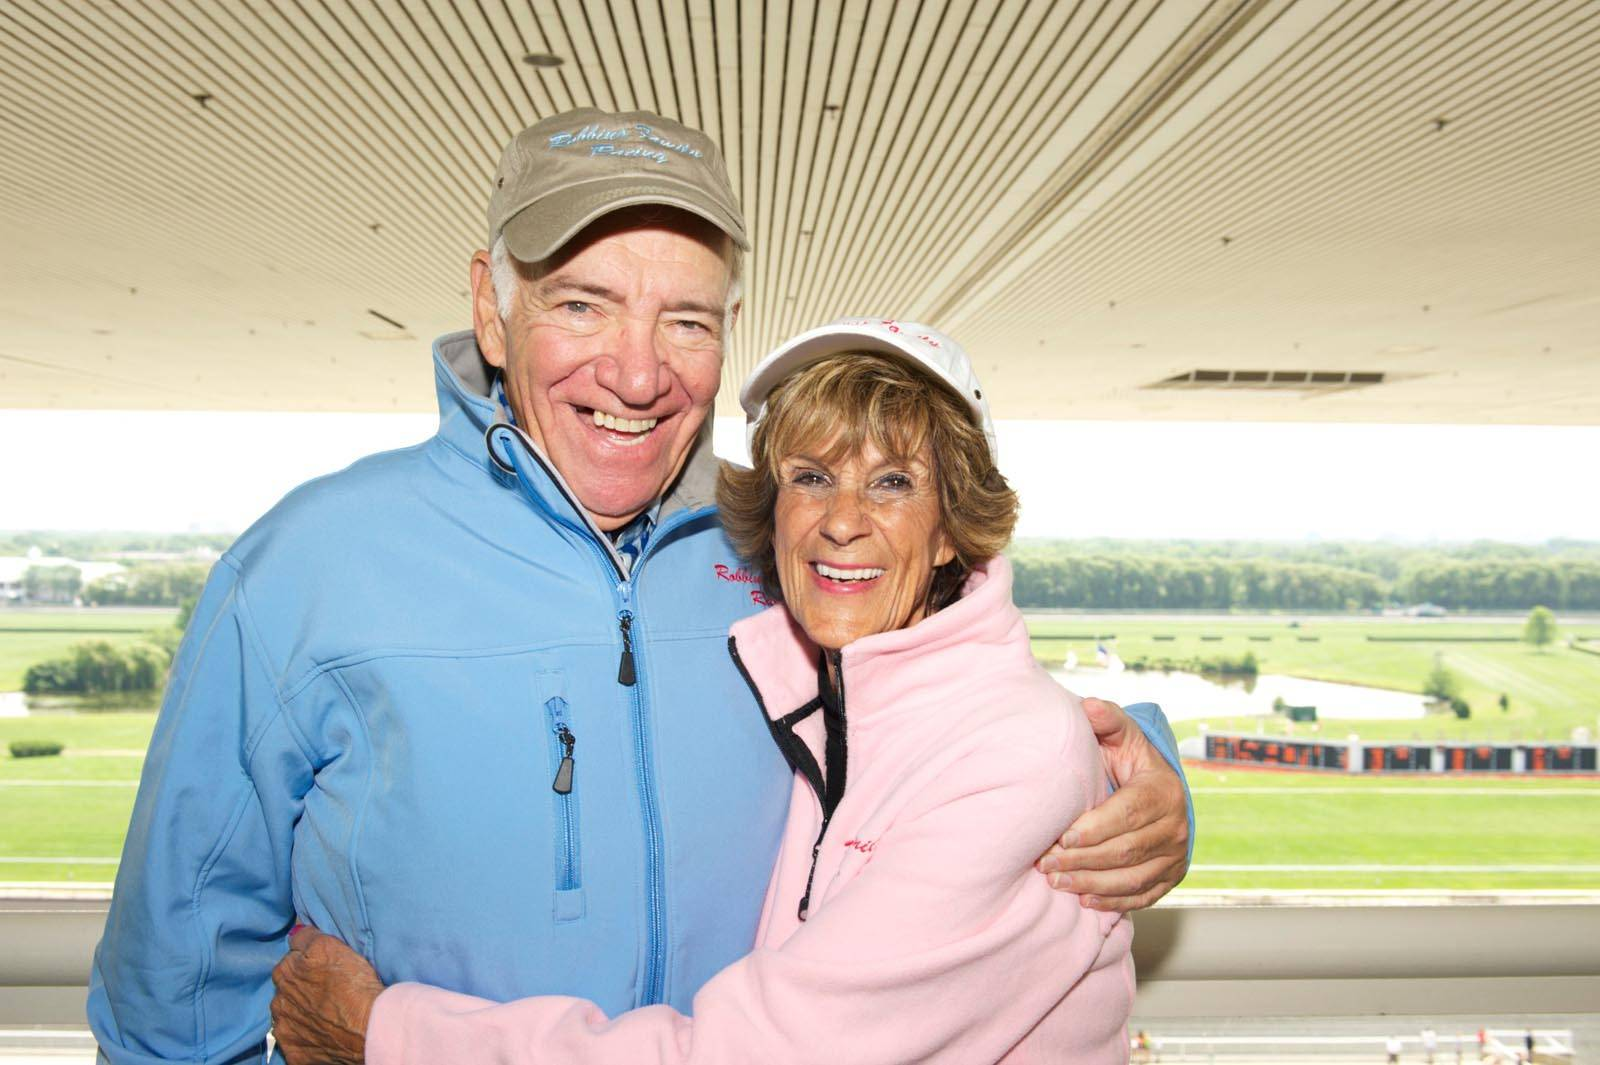 Sheldon and Barbara Robbins celebrated their 50th wedding anniversary in 2013 at Arlington Park. Sheldon Robbins died Monday. He was 78.